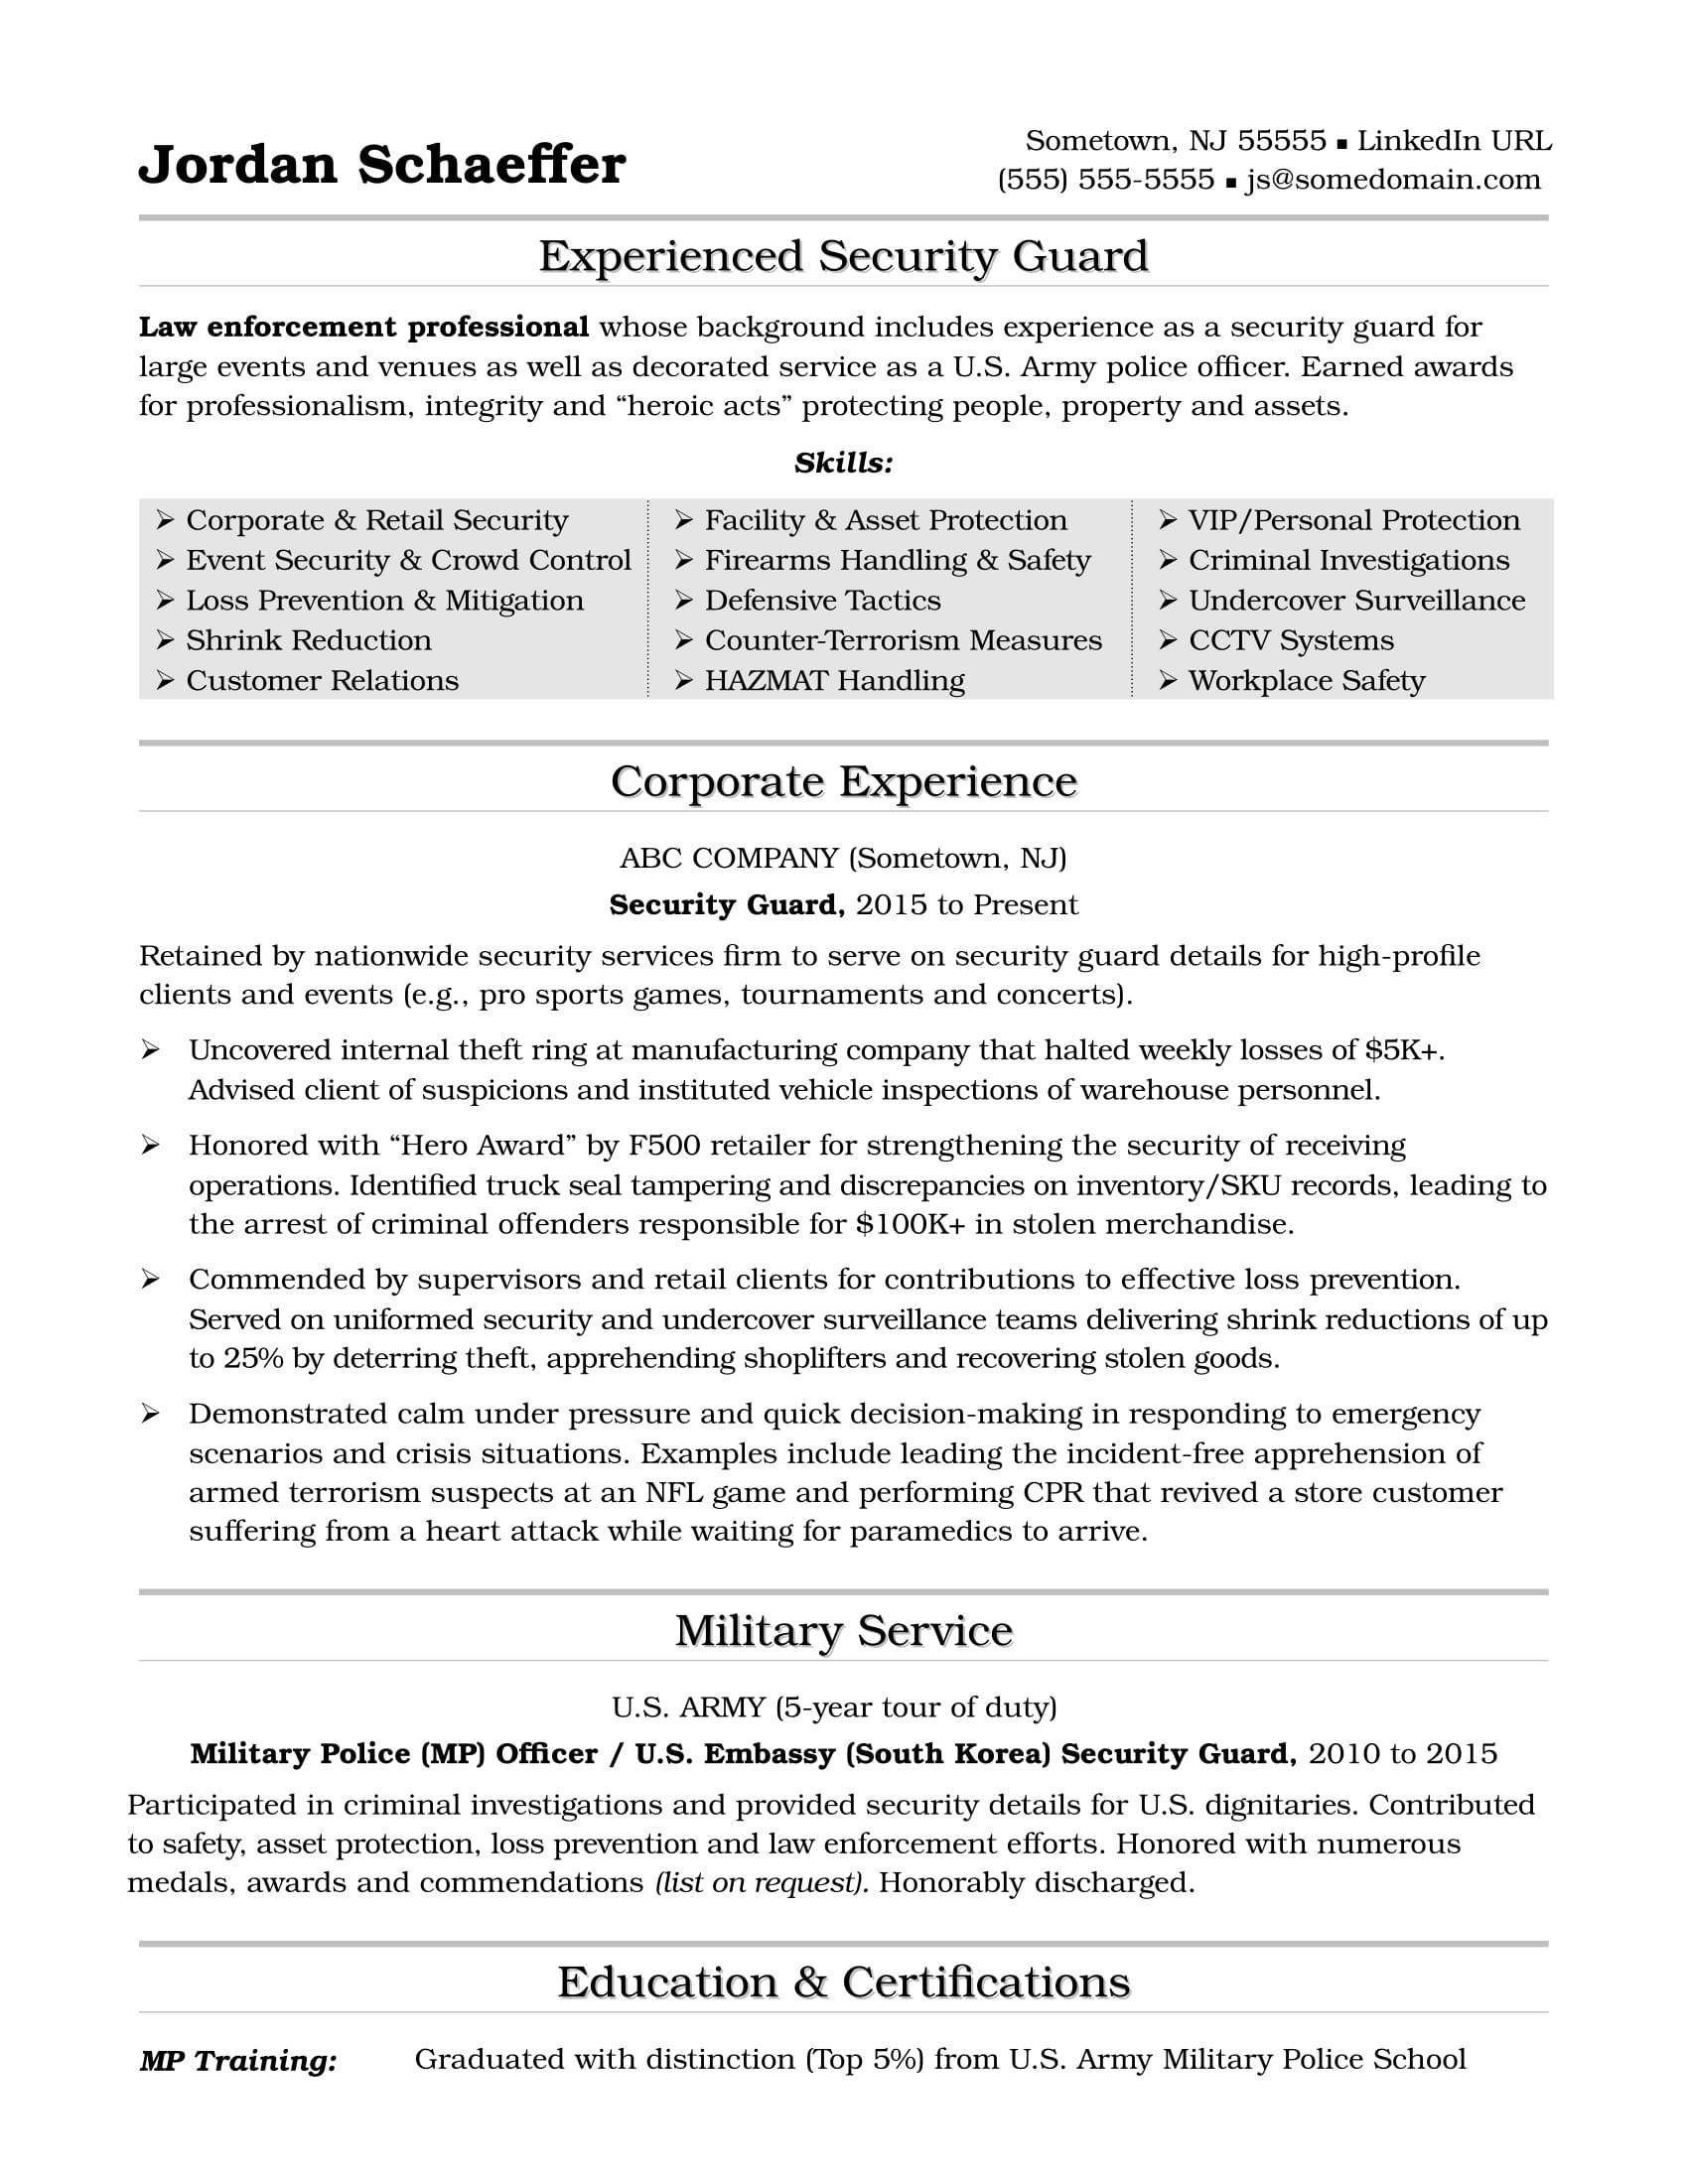 Resume Sample For Experienced Impressive Security Guard Resume Sample  Sample Resume And Career Advice